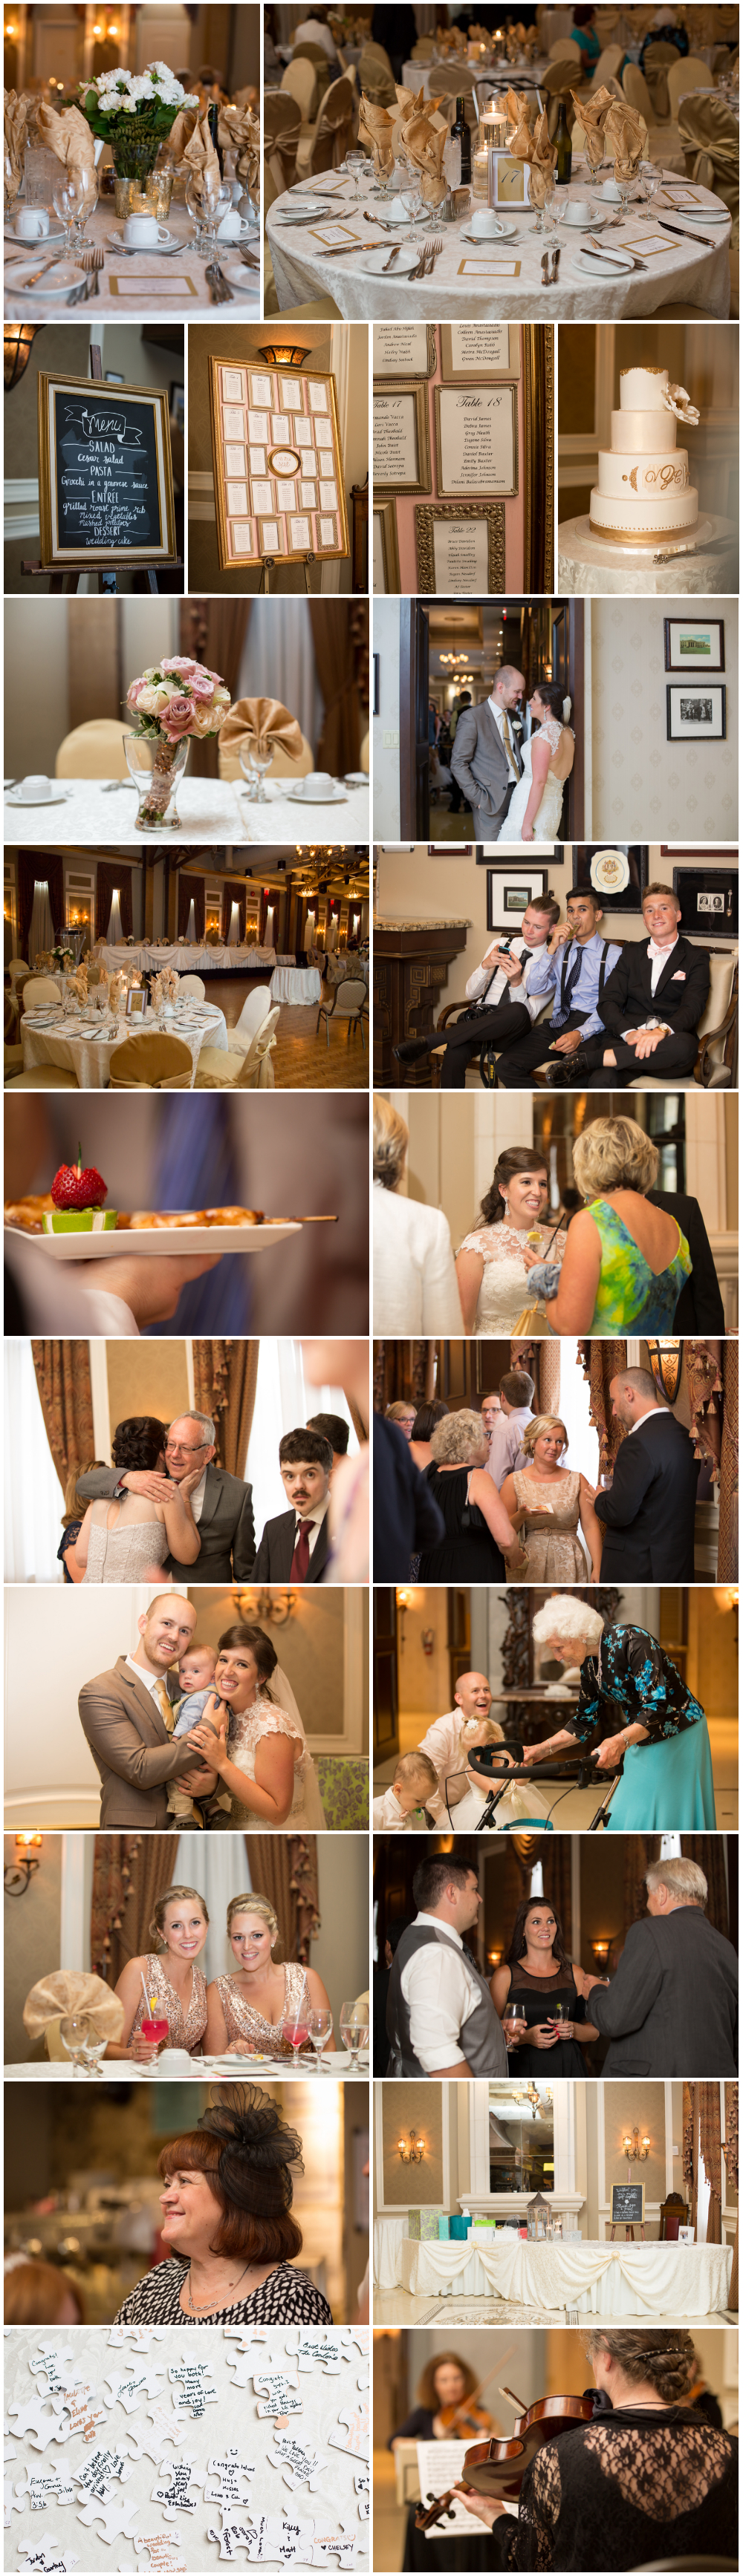 Liuna_Station_Hamilton_Wedding_Photo_JJMedia-13